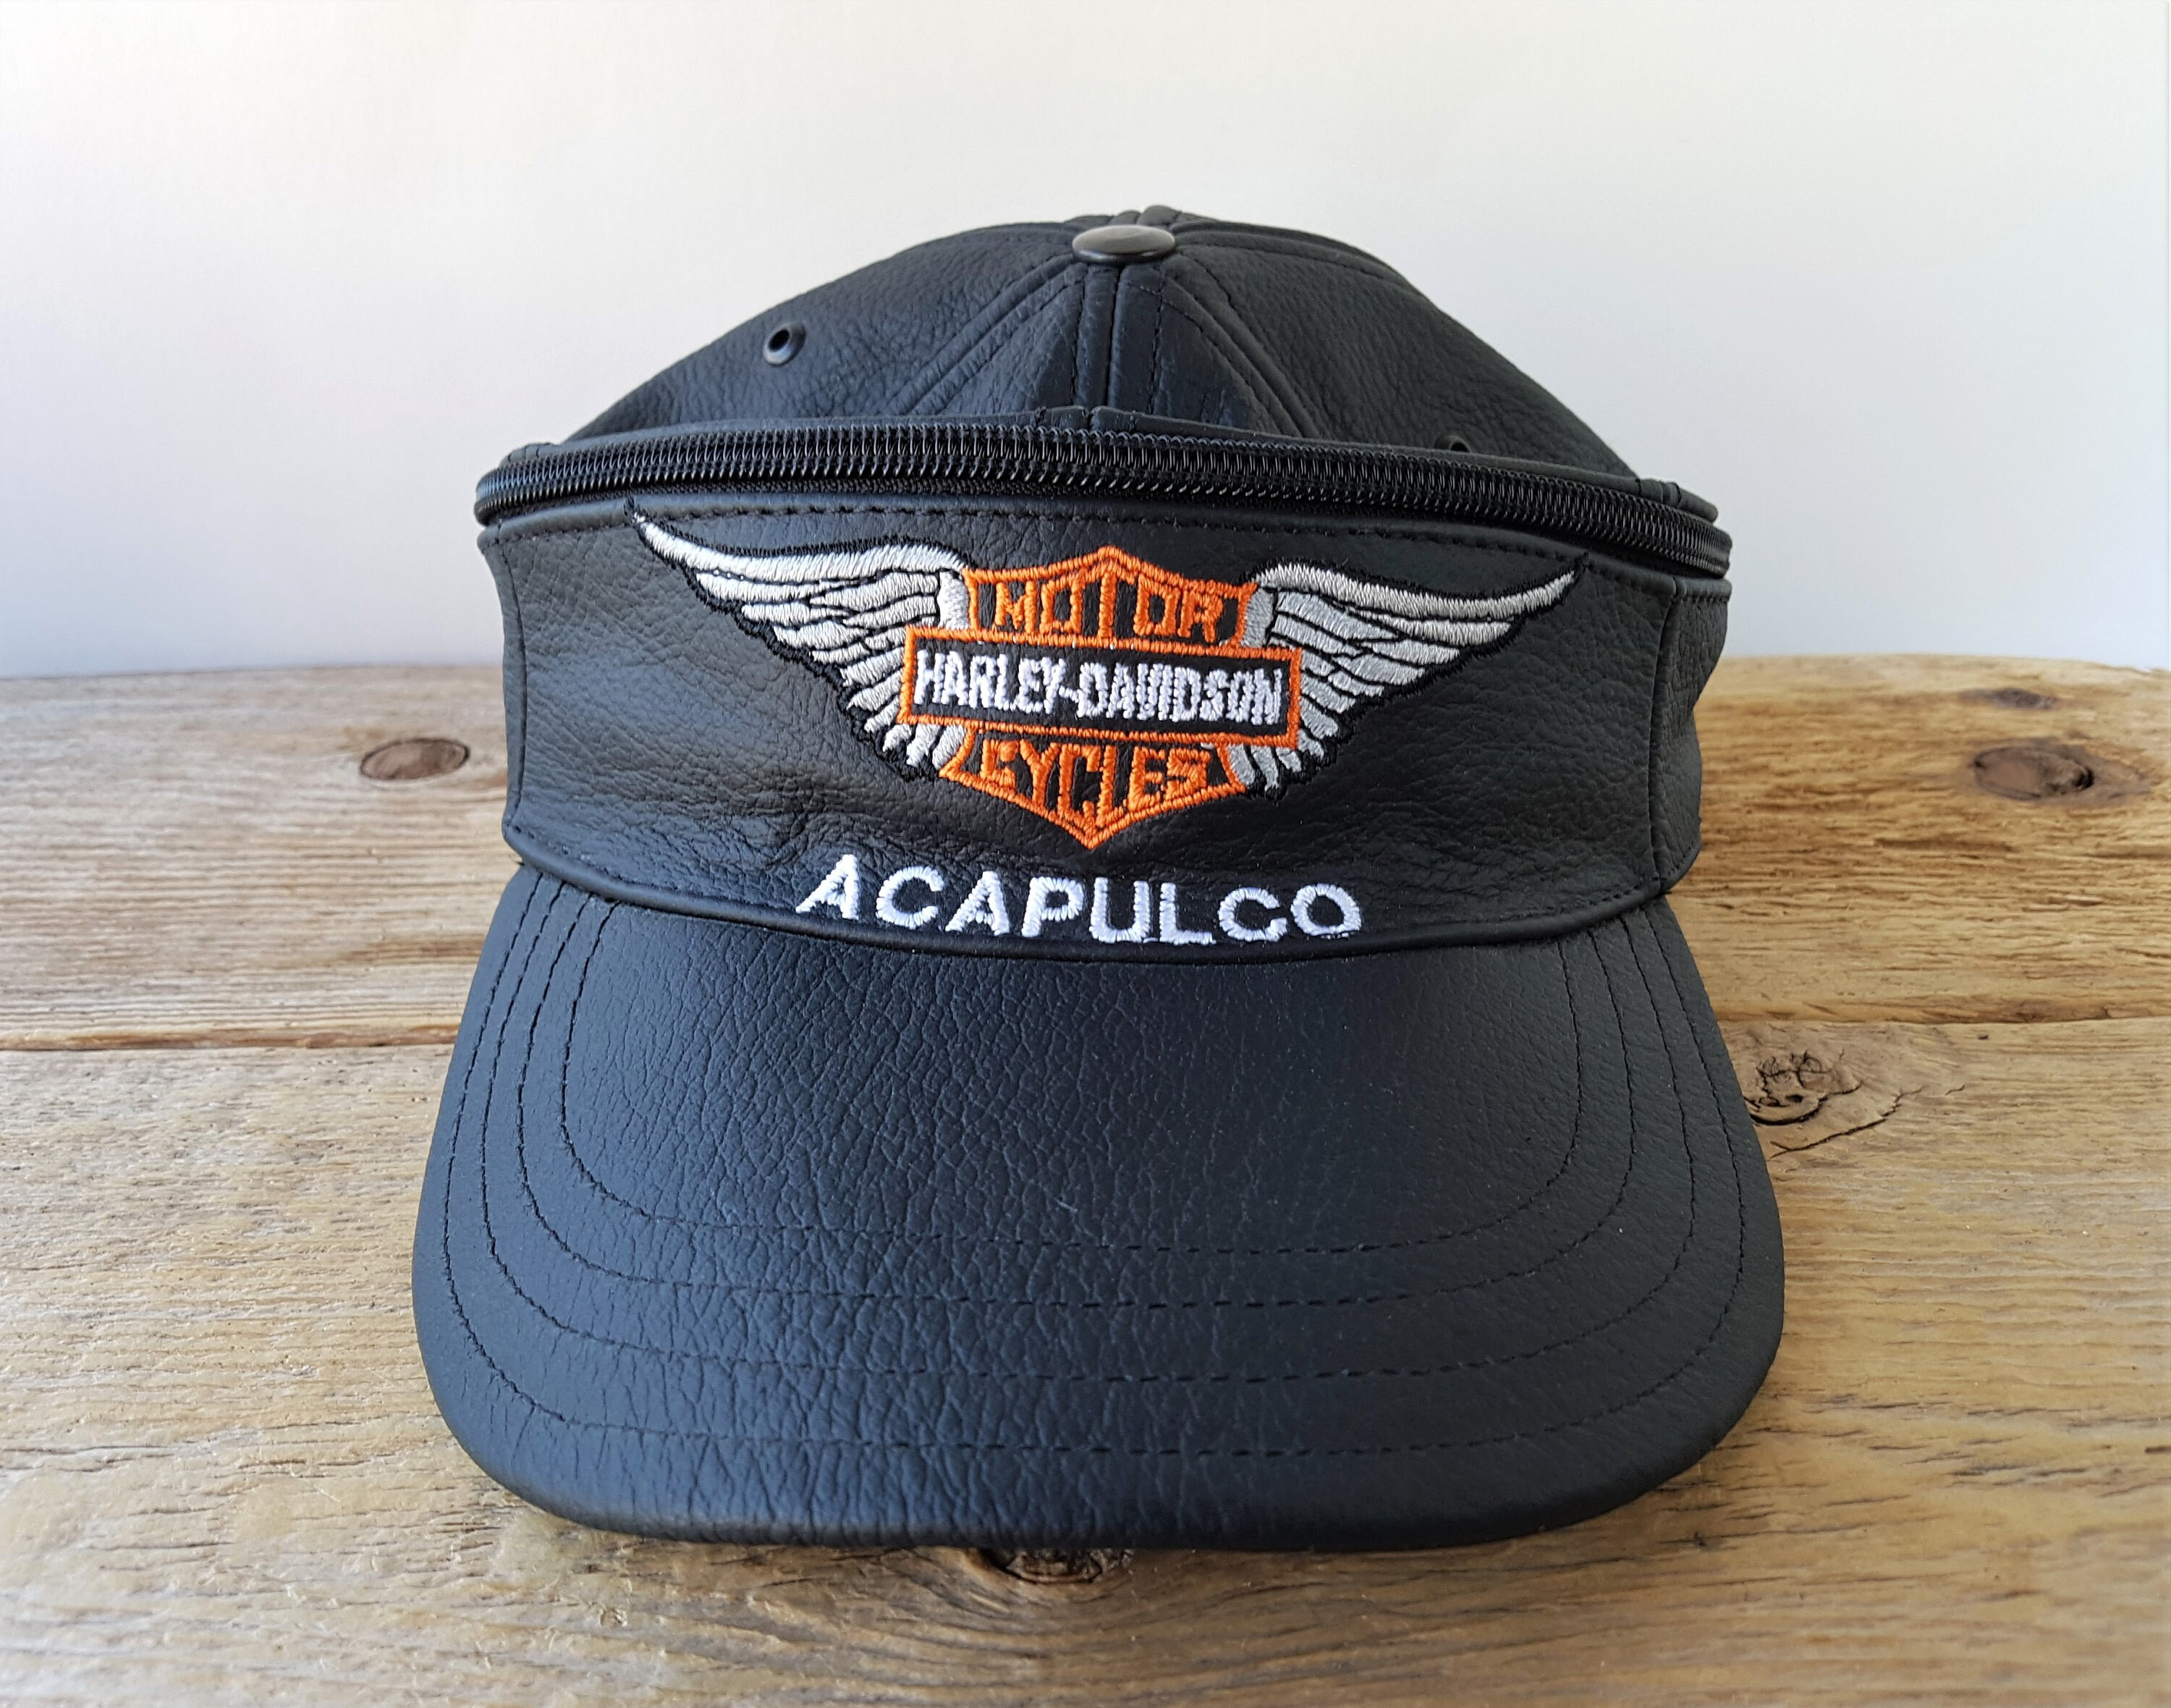 e9aac6a6c HARLEY DAVIDSON Motorcycles ACAPULCO Vintage Genuine Leather Hat / Visor  with Zipper Rare Dual Transforming Full Dome Cap & Sun Visor